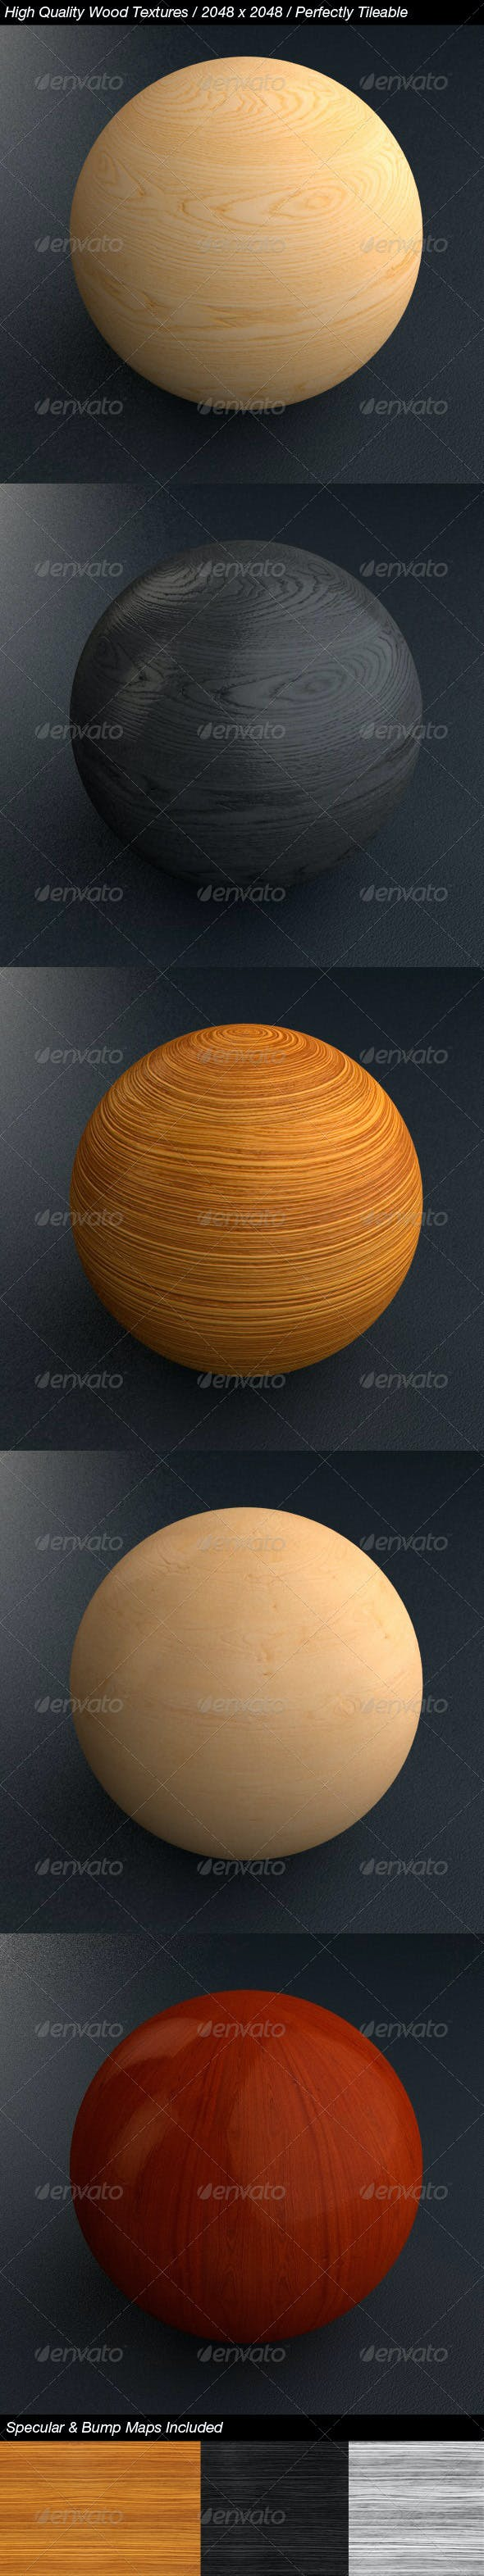 5 HQ Wood Textures with Bump & Specular Maps - 3DOcean Item for Sale